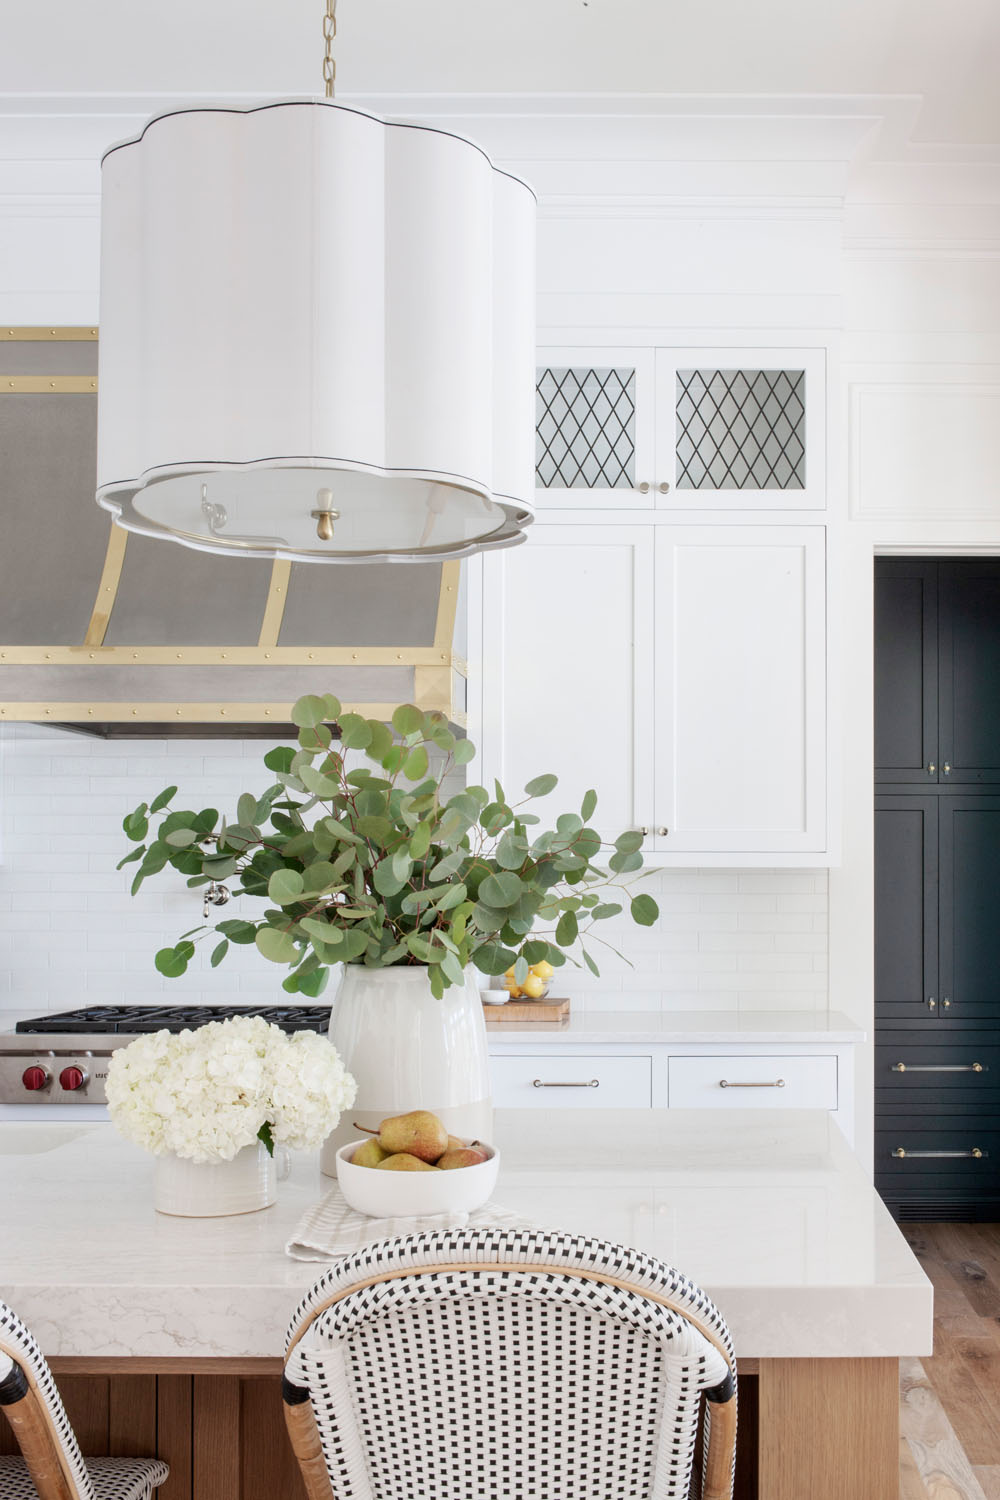 Home Reveal White dove benjamin moore walls, Leaded